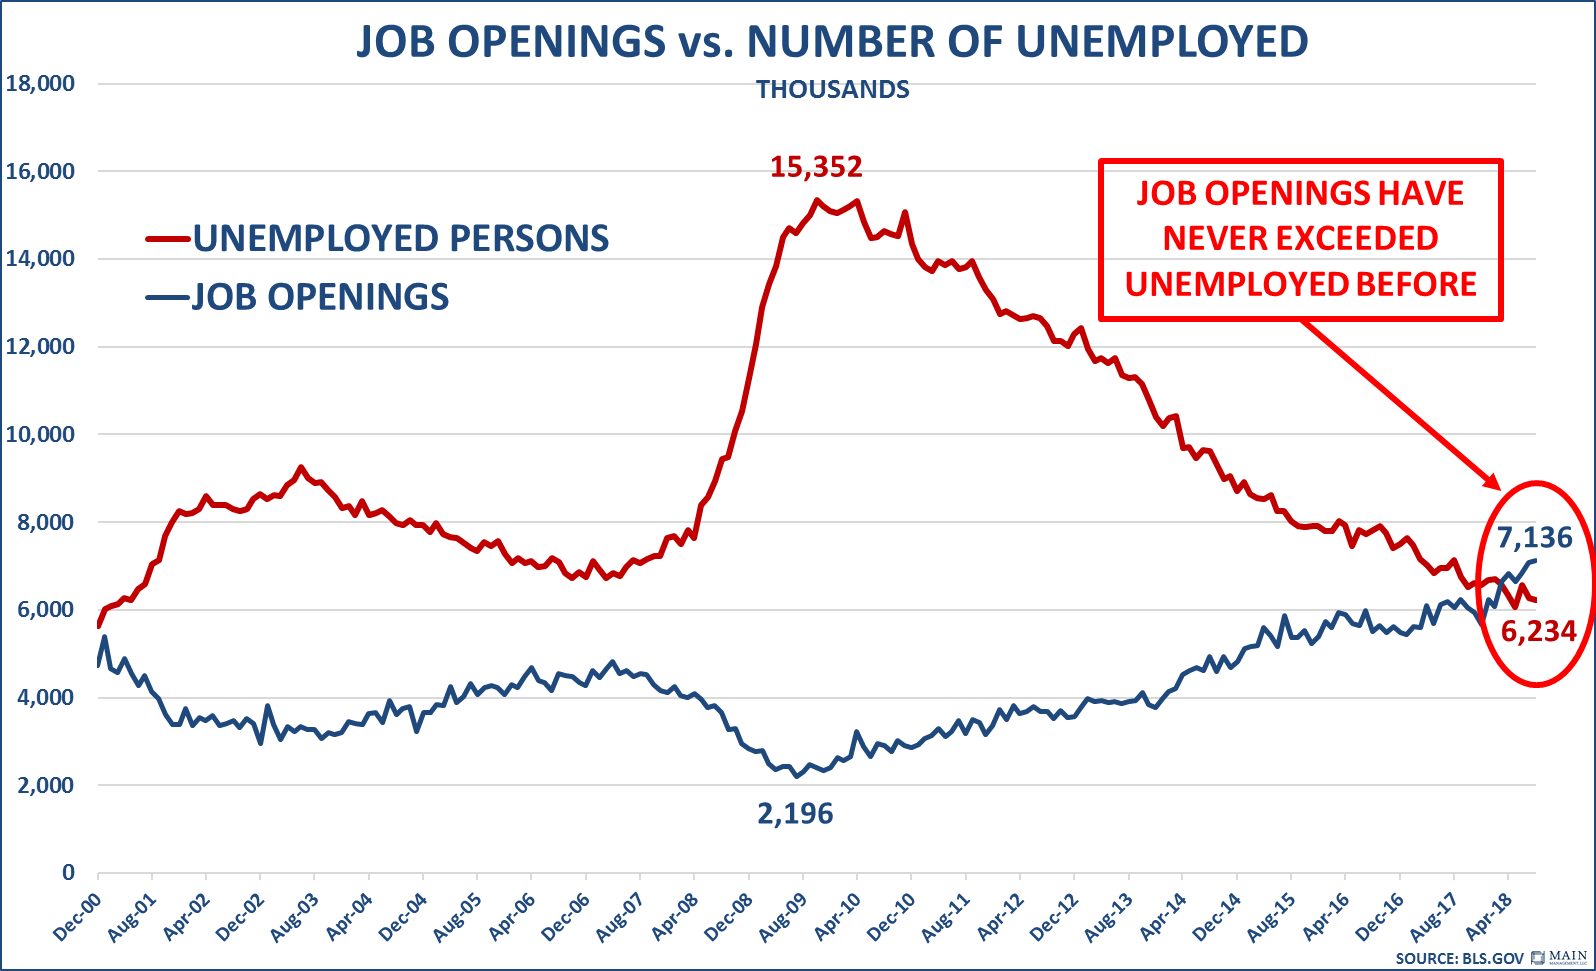 Job Openings Number of Unemployed